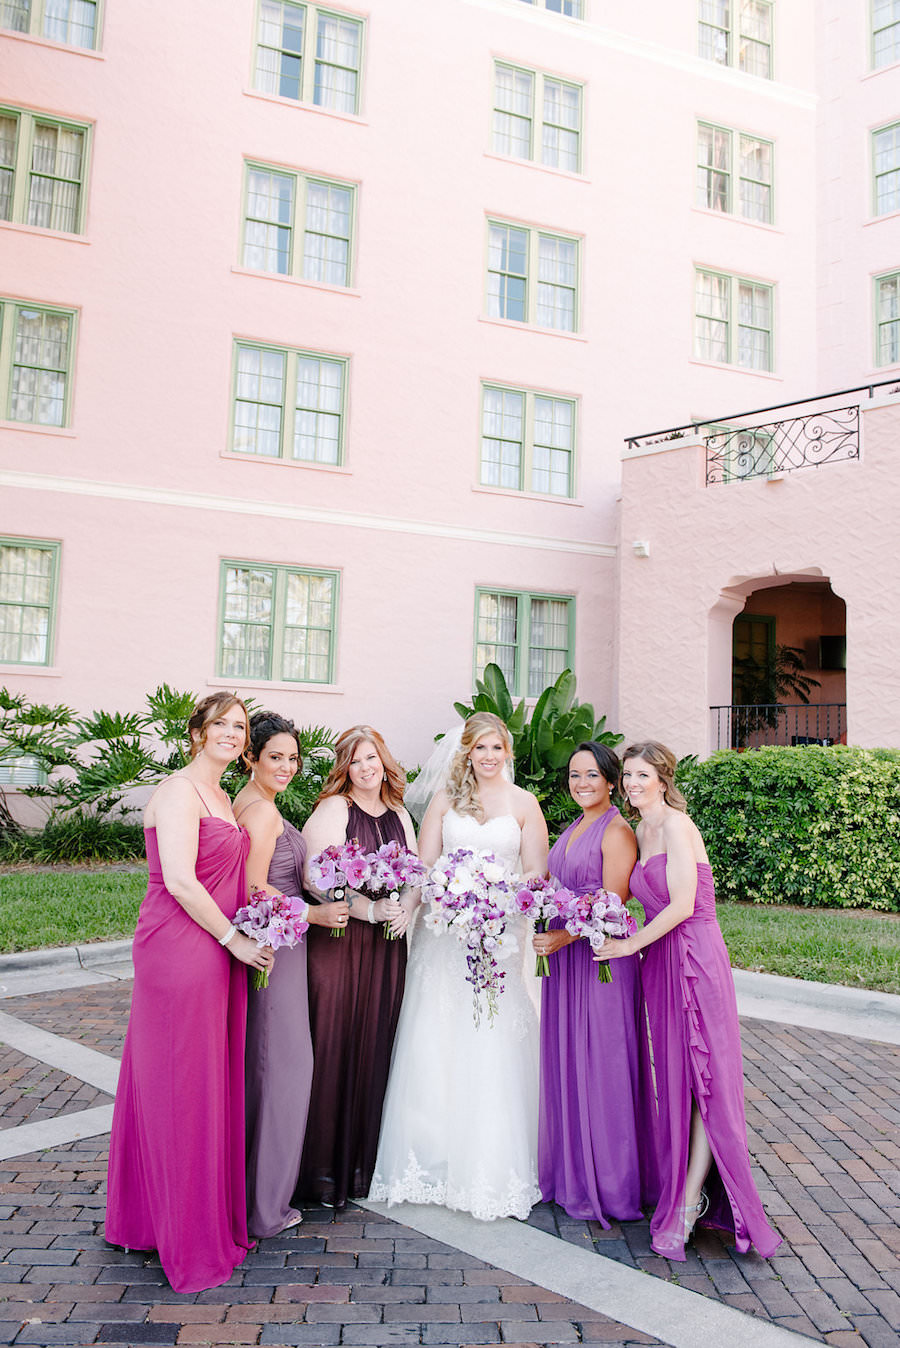 Outdoor St Pete Bridal Party Wedding Portrait | Purple and Fuchsia Mismatched Dessy Collection Bridesmaid Dresses with Ivory Sweetheart Narin Moda Wedding Dress and Pink, White and Purple Wedding Bouquet | Wedding Hair and Makeup Artist Michele Renee The Studio